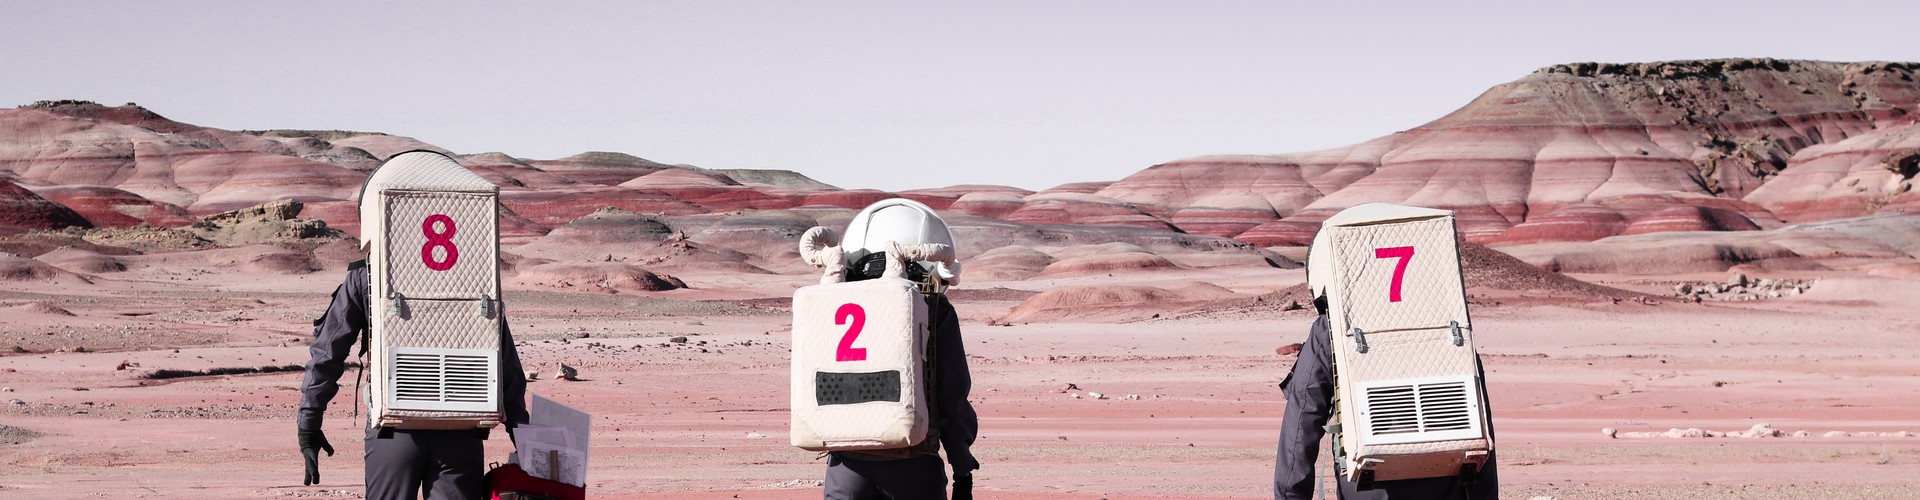 Getting ready for geological sample collection at MDRS 4250300N518300E-11-02-2019 (Credit: Maria Grulich (distributed via imaggeo.egu.eu))